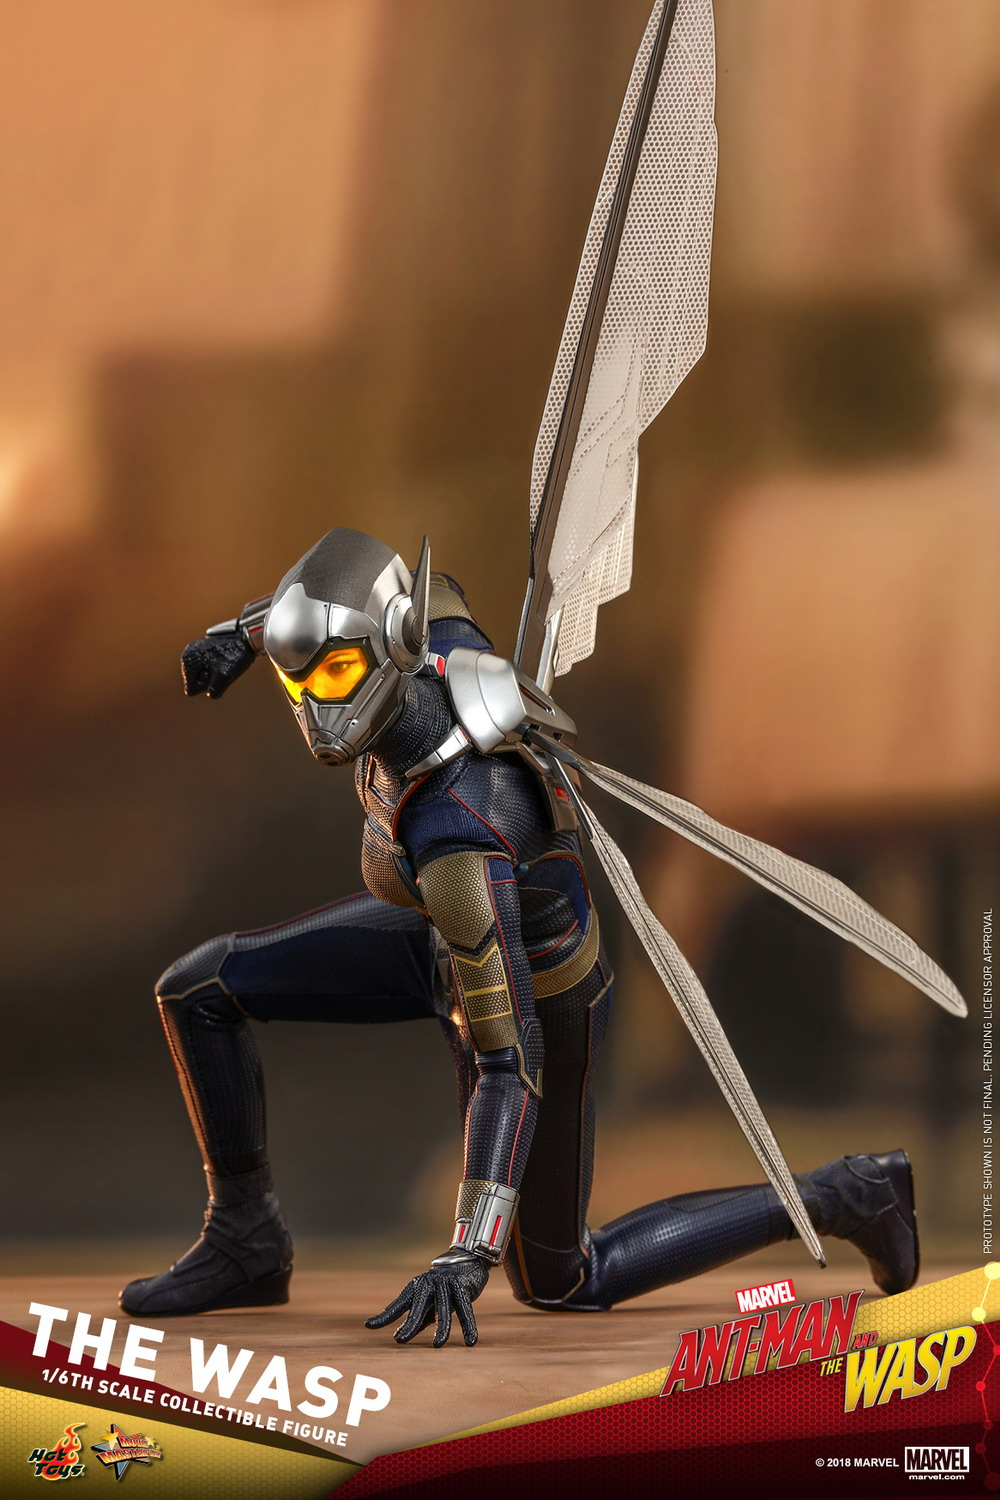 Ant Man And The Wasp Kinostart